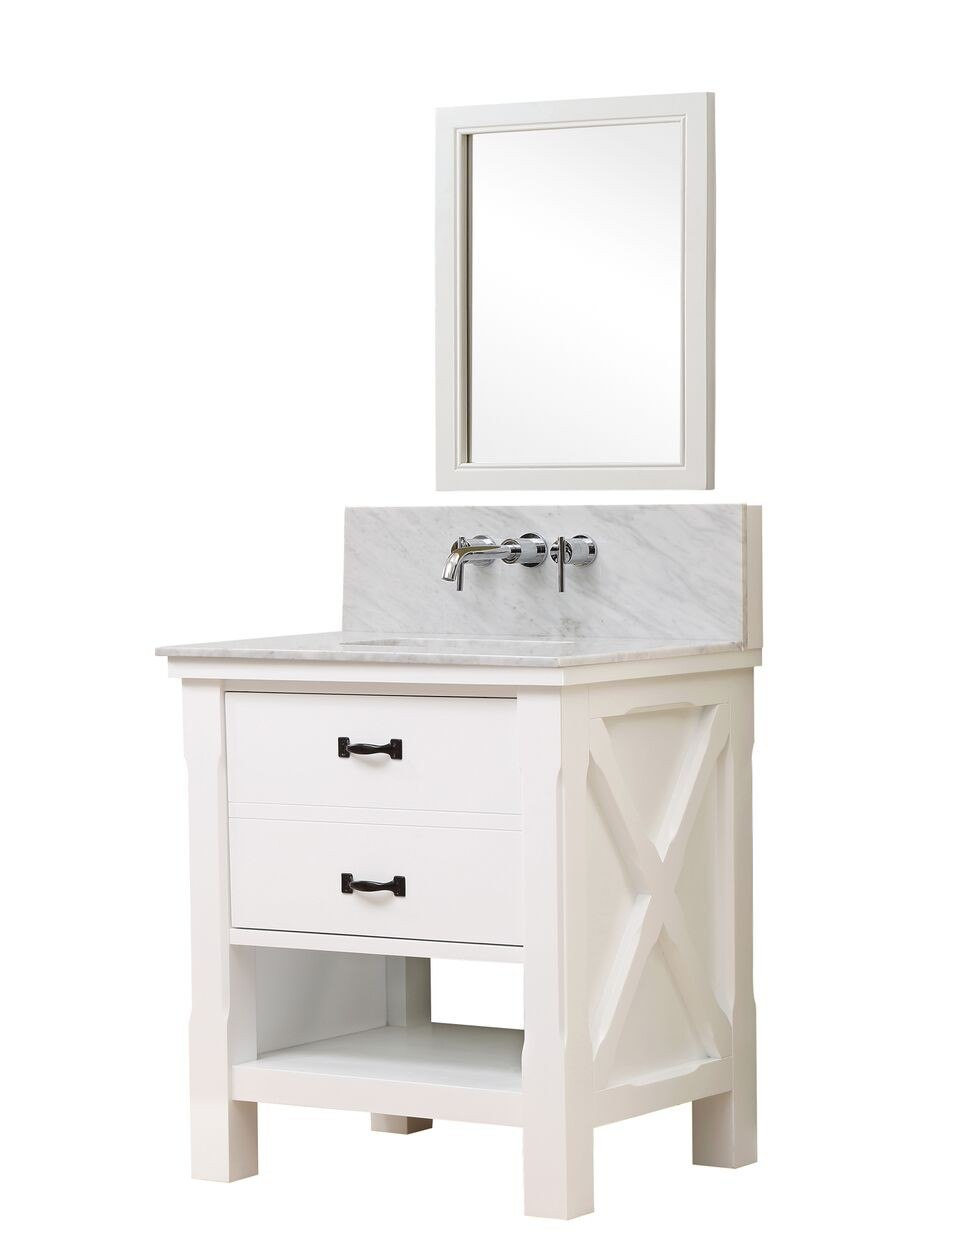 DIRECT VANITY SINK 32S1-WWC-WM-M XTRAORDINARY SPA PREMIUM 32 INCH WHITE VANITY WITH CARRERA WHITE MARBLE TOP AND MIRROR